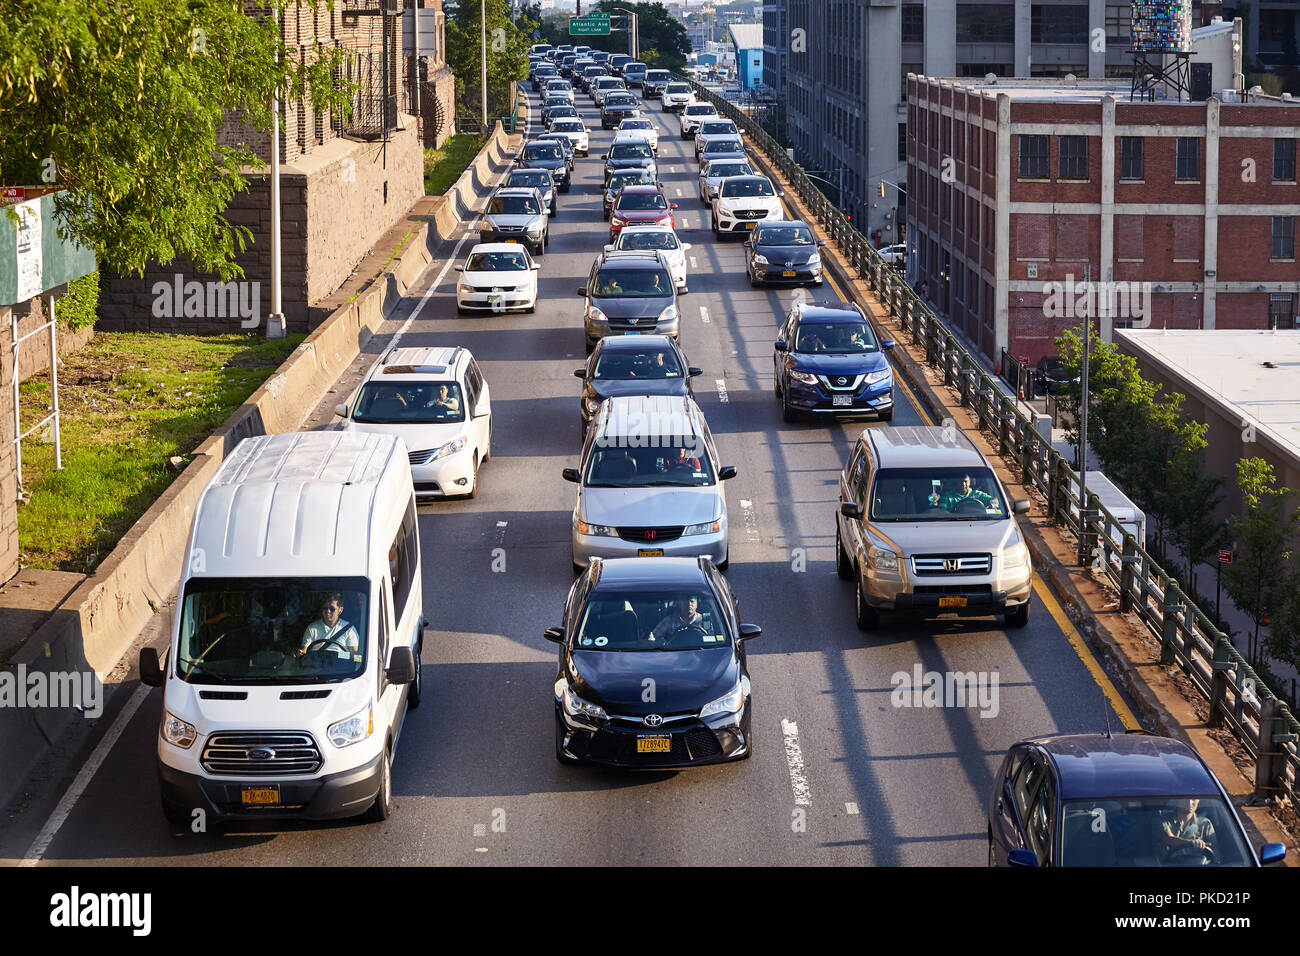 New York, USA - July 01, 2018: Traffic jam on the Brooklyn Queens Expressway (Interstate 278). - Stock Image